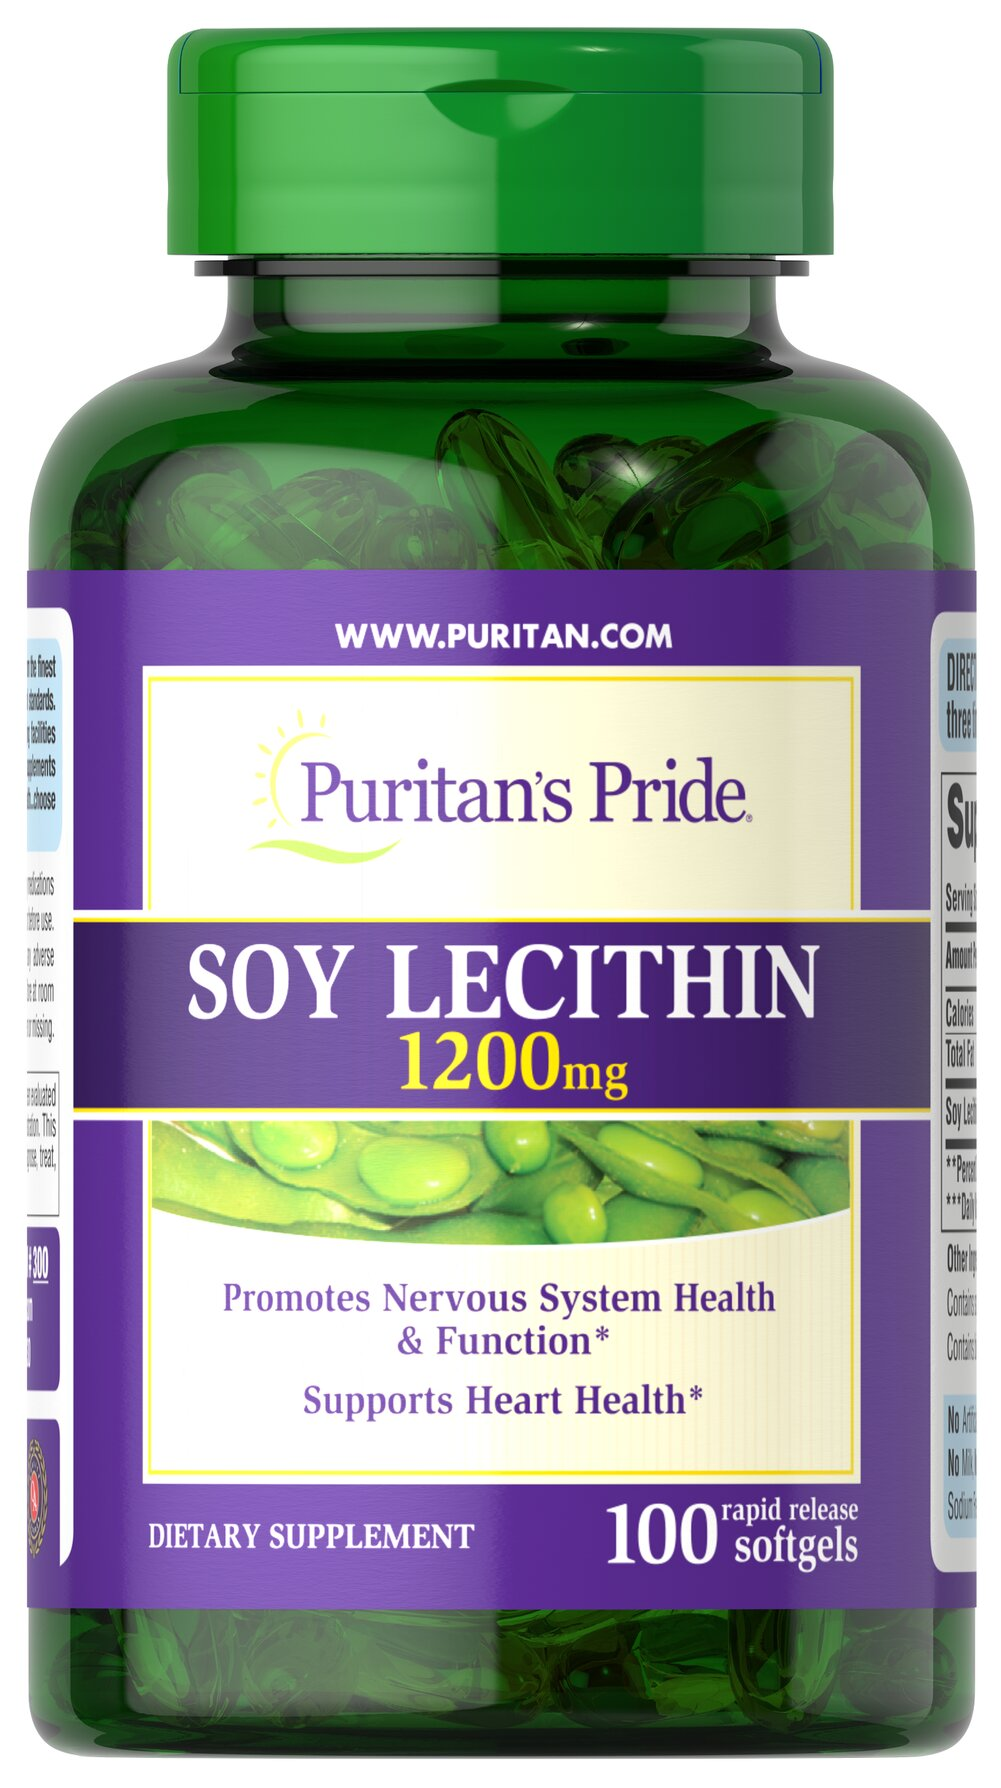 Soy Lecithin 1200 mg <p>Lecithin is an important natural source of Choline and Inositol, two nutrients important for the proper functioning of the body.** Since levels of phospholipids in the brain can decline as you get older, it may be especially important to supplement with a high-quality Lecithin formula from Puritan's Pride.</p> 100 Softgels 1200 mg $11.49